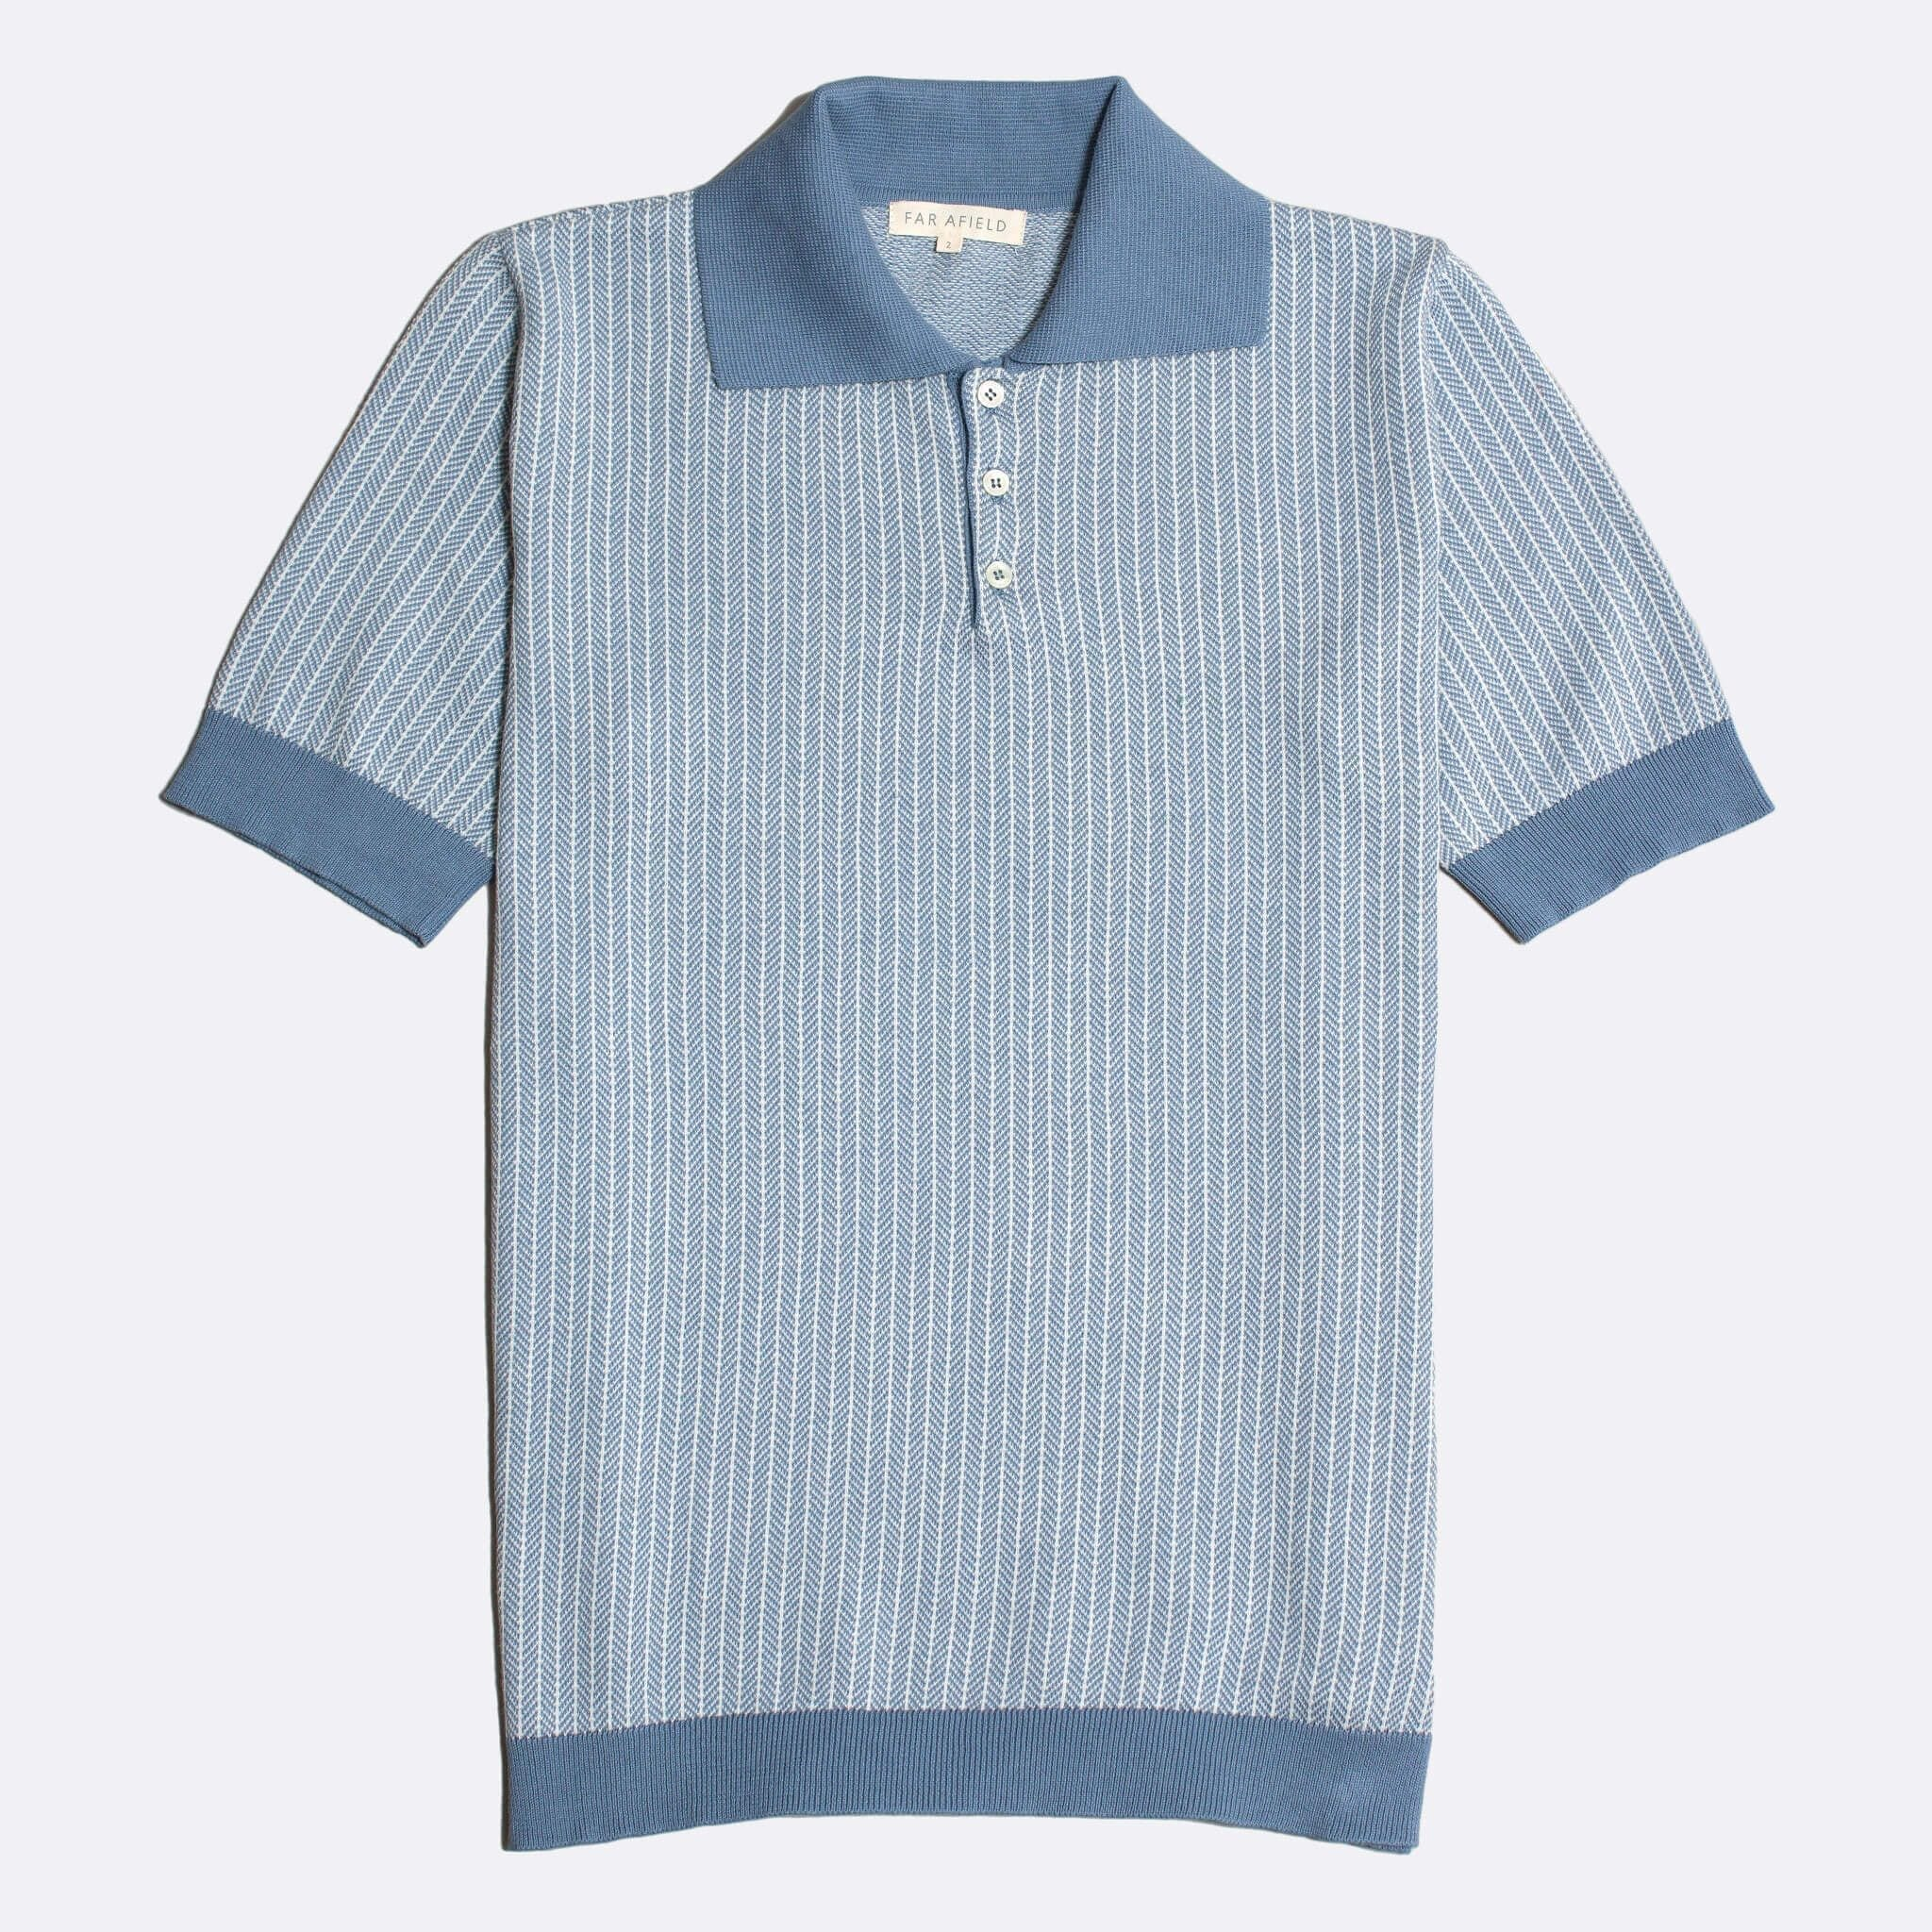 Far Afield Blakey Short Sleeve Polo a Stonewash Blue BCI Cotton Fabric Italian Mod Knitwear Smart Casual